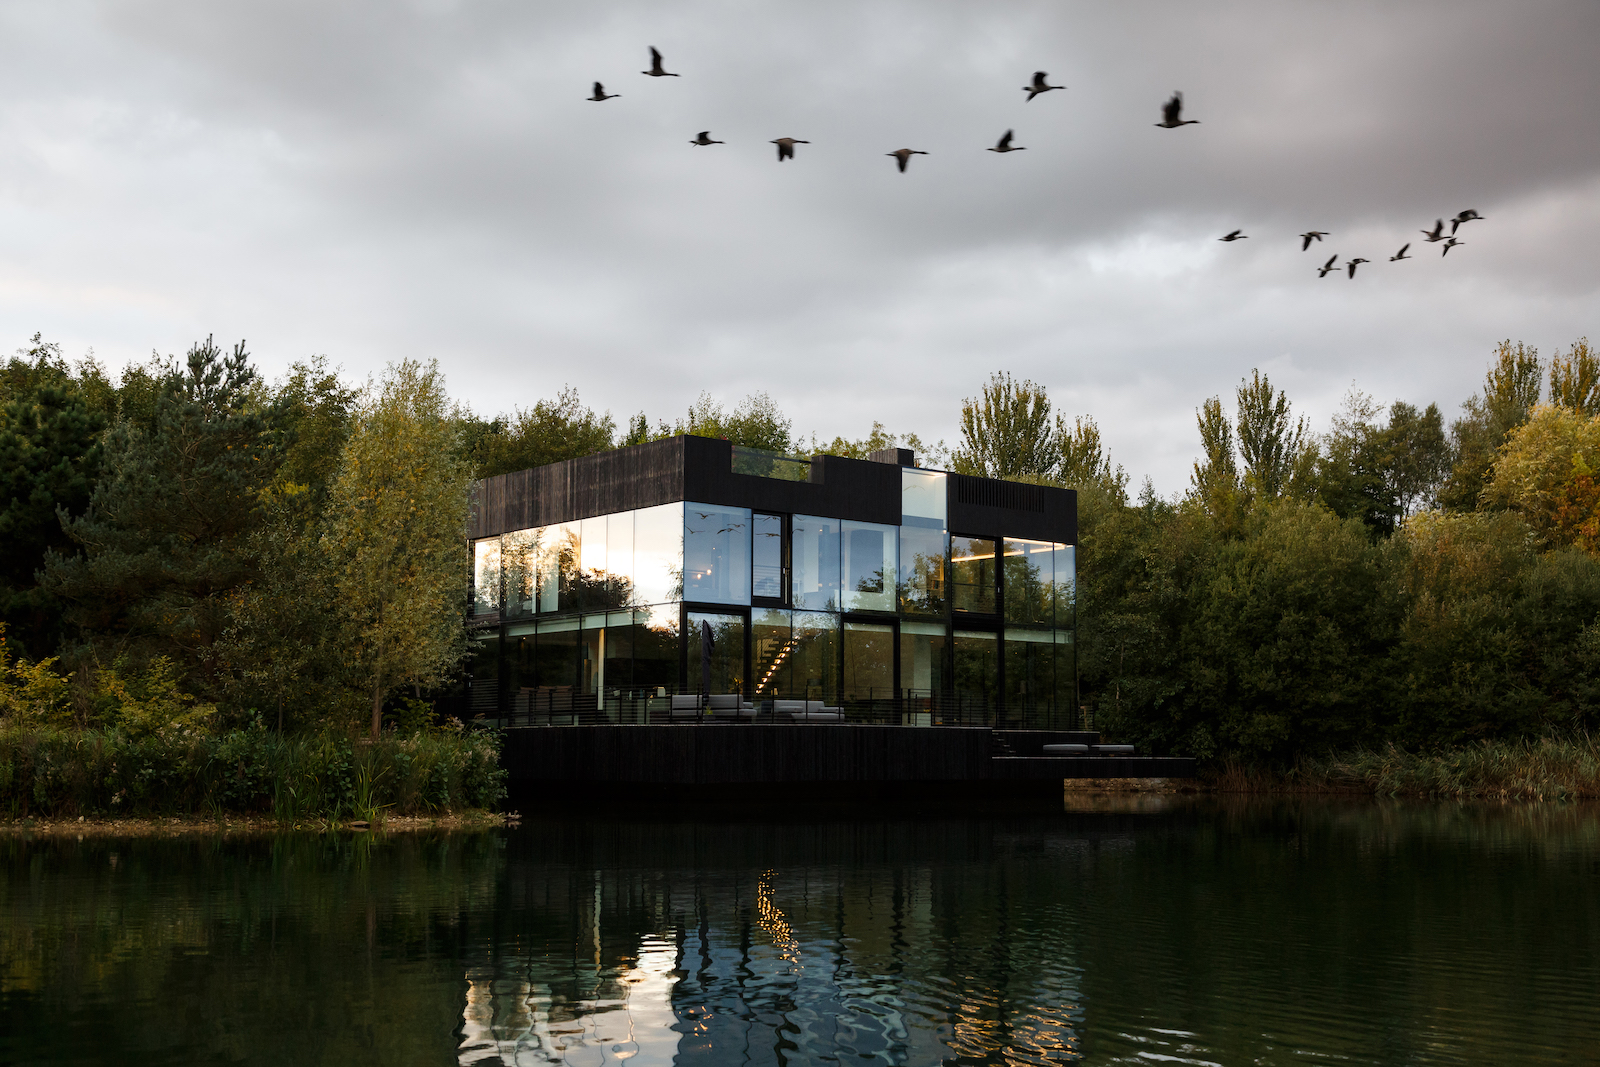 Glass lake house appears to float on water